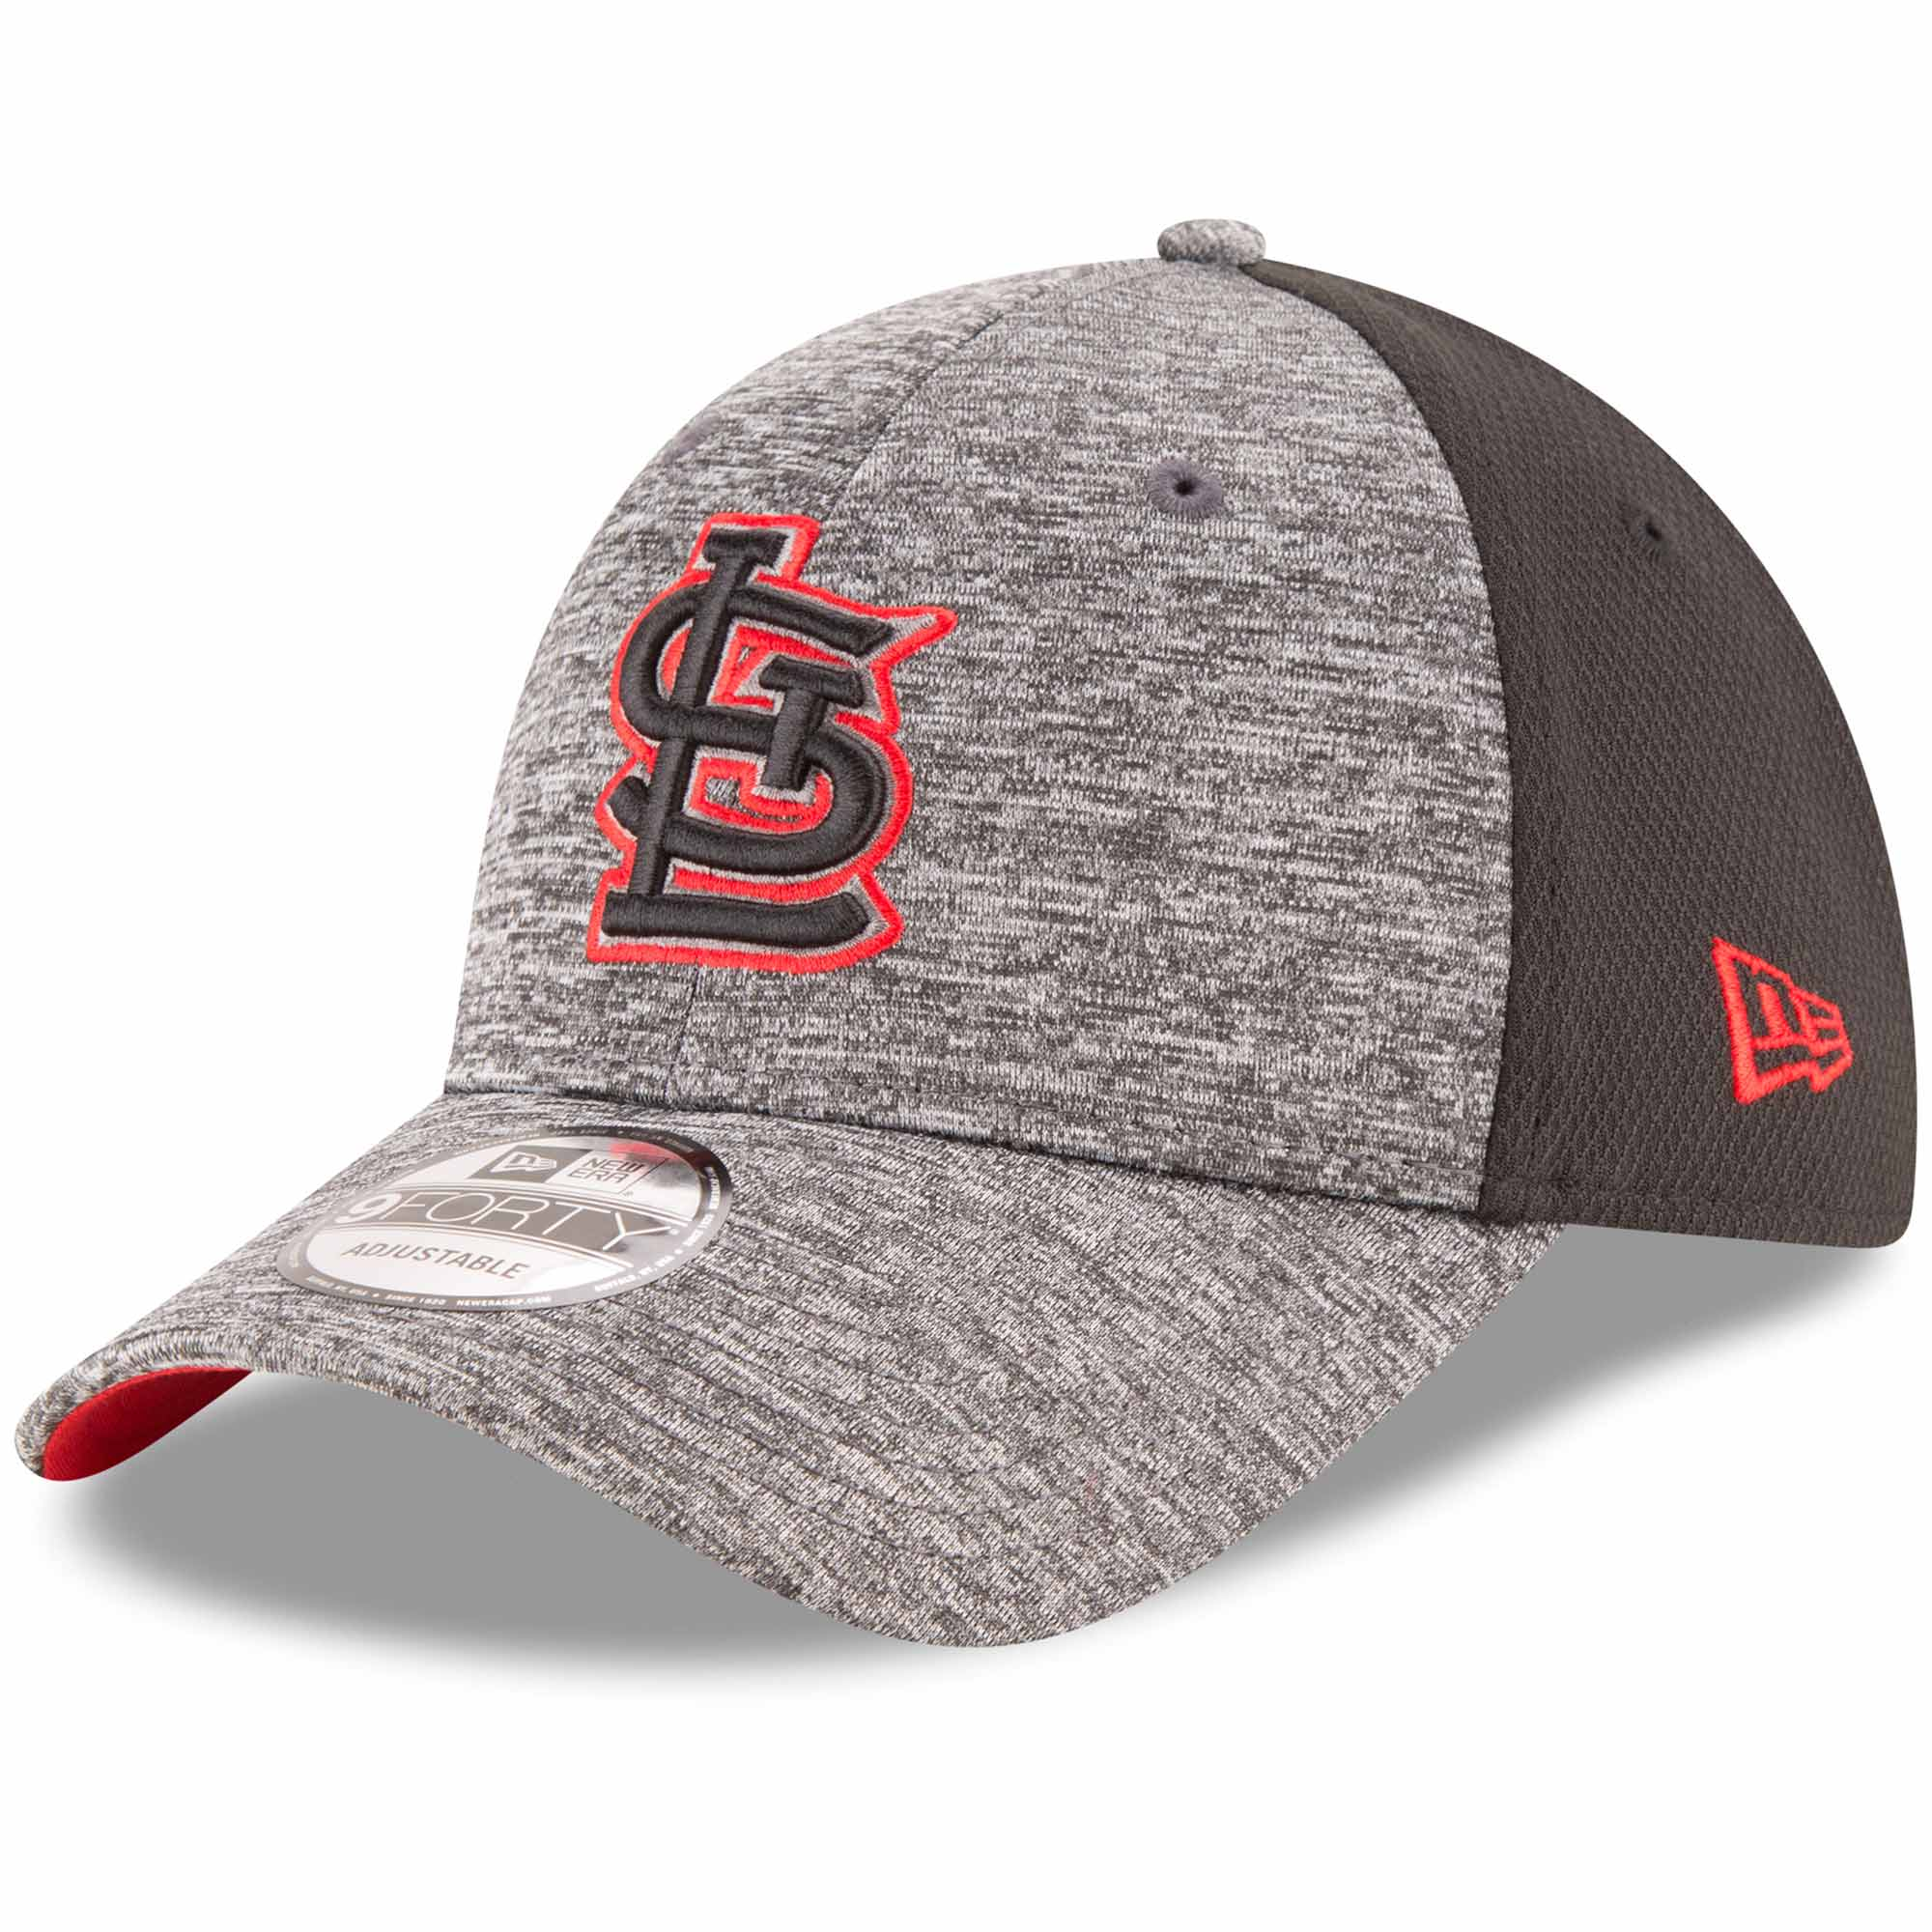 St. Louis Cardinals New Era Shadowed Team Logo 9FORTY Adjustable Hat - Heathered Gray/Black - OSFA